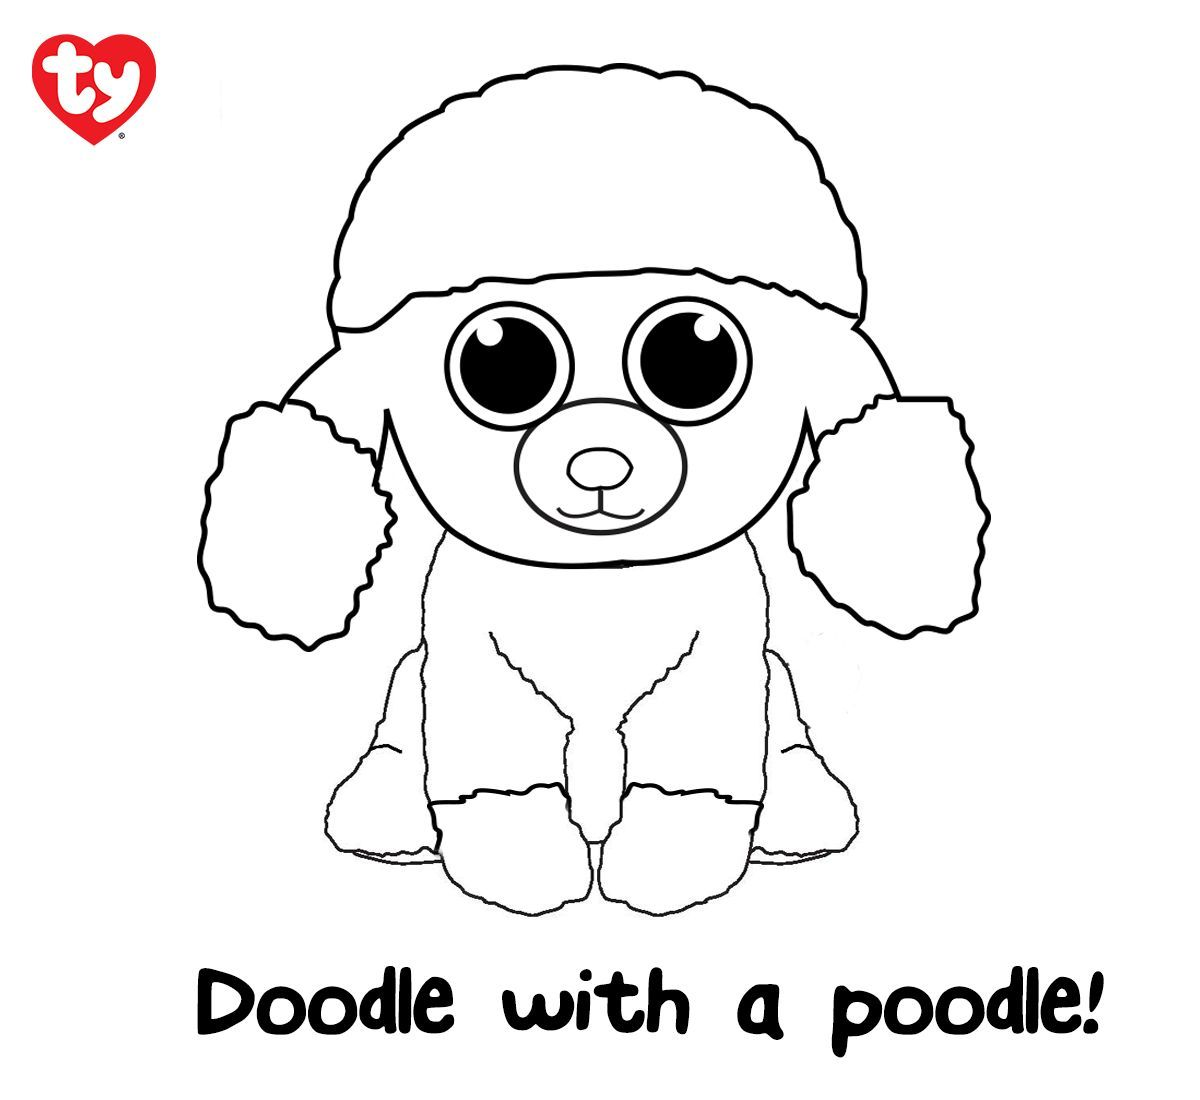 Can you give Rainbow the poodle some color? http://bit.ly ...